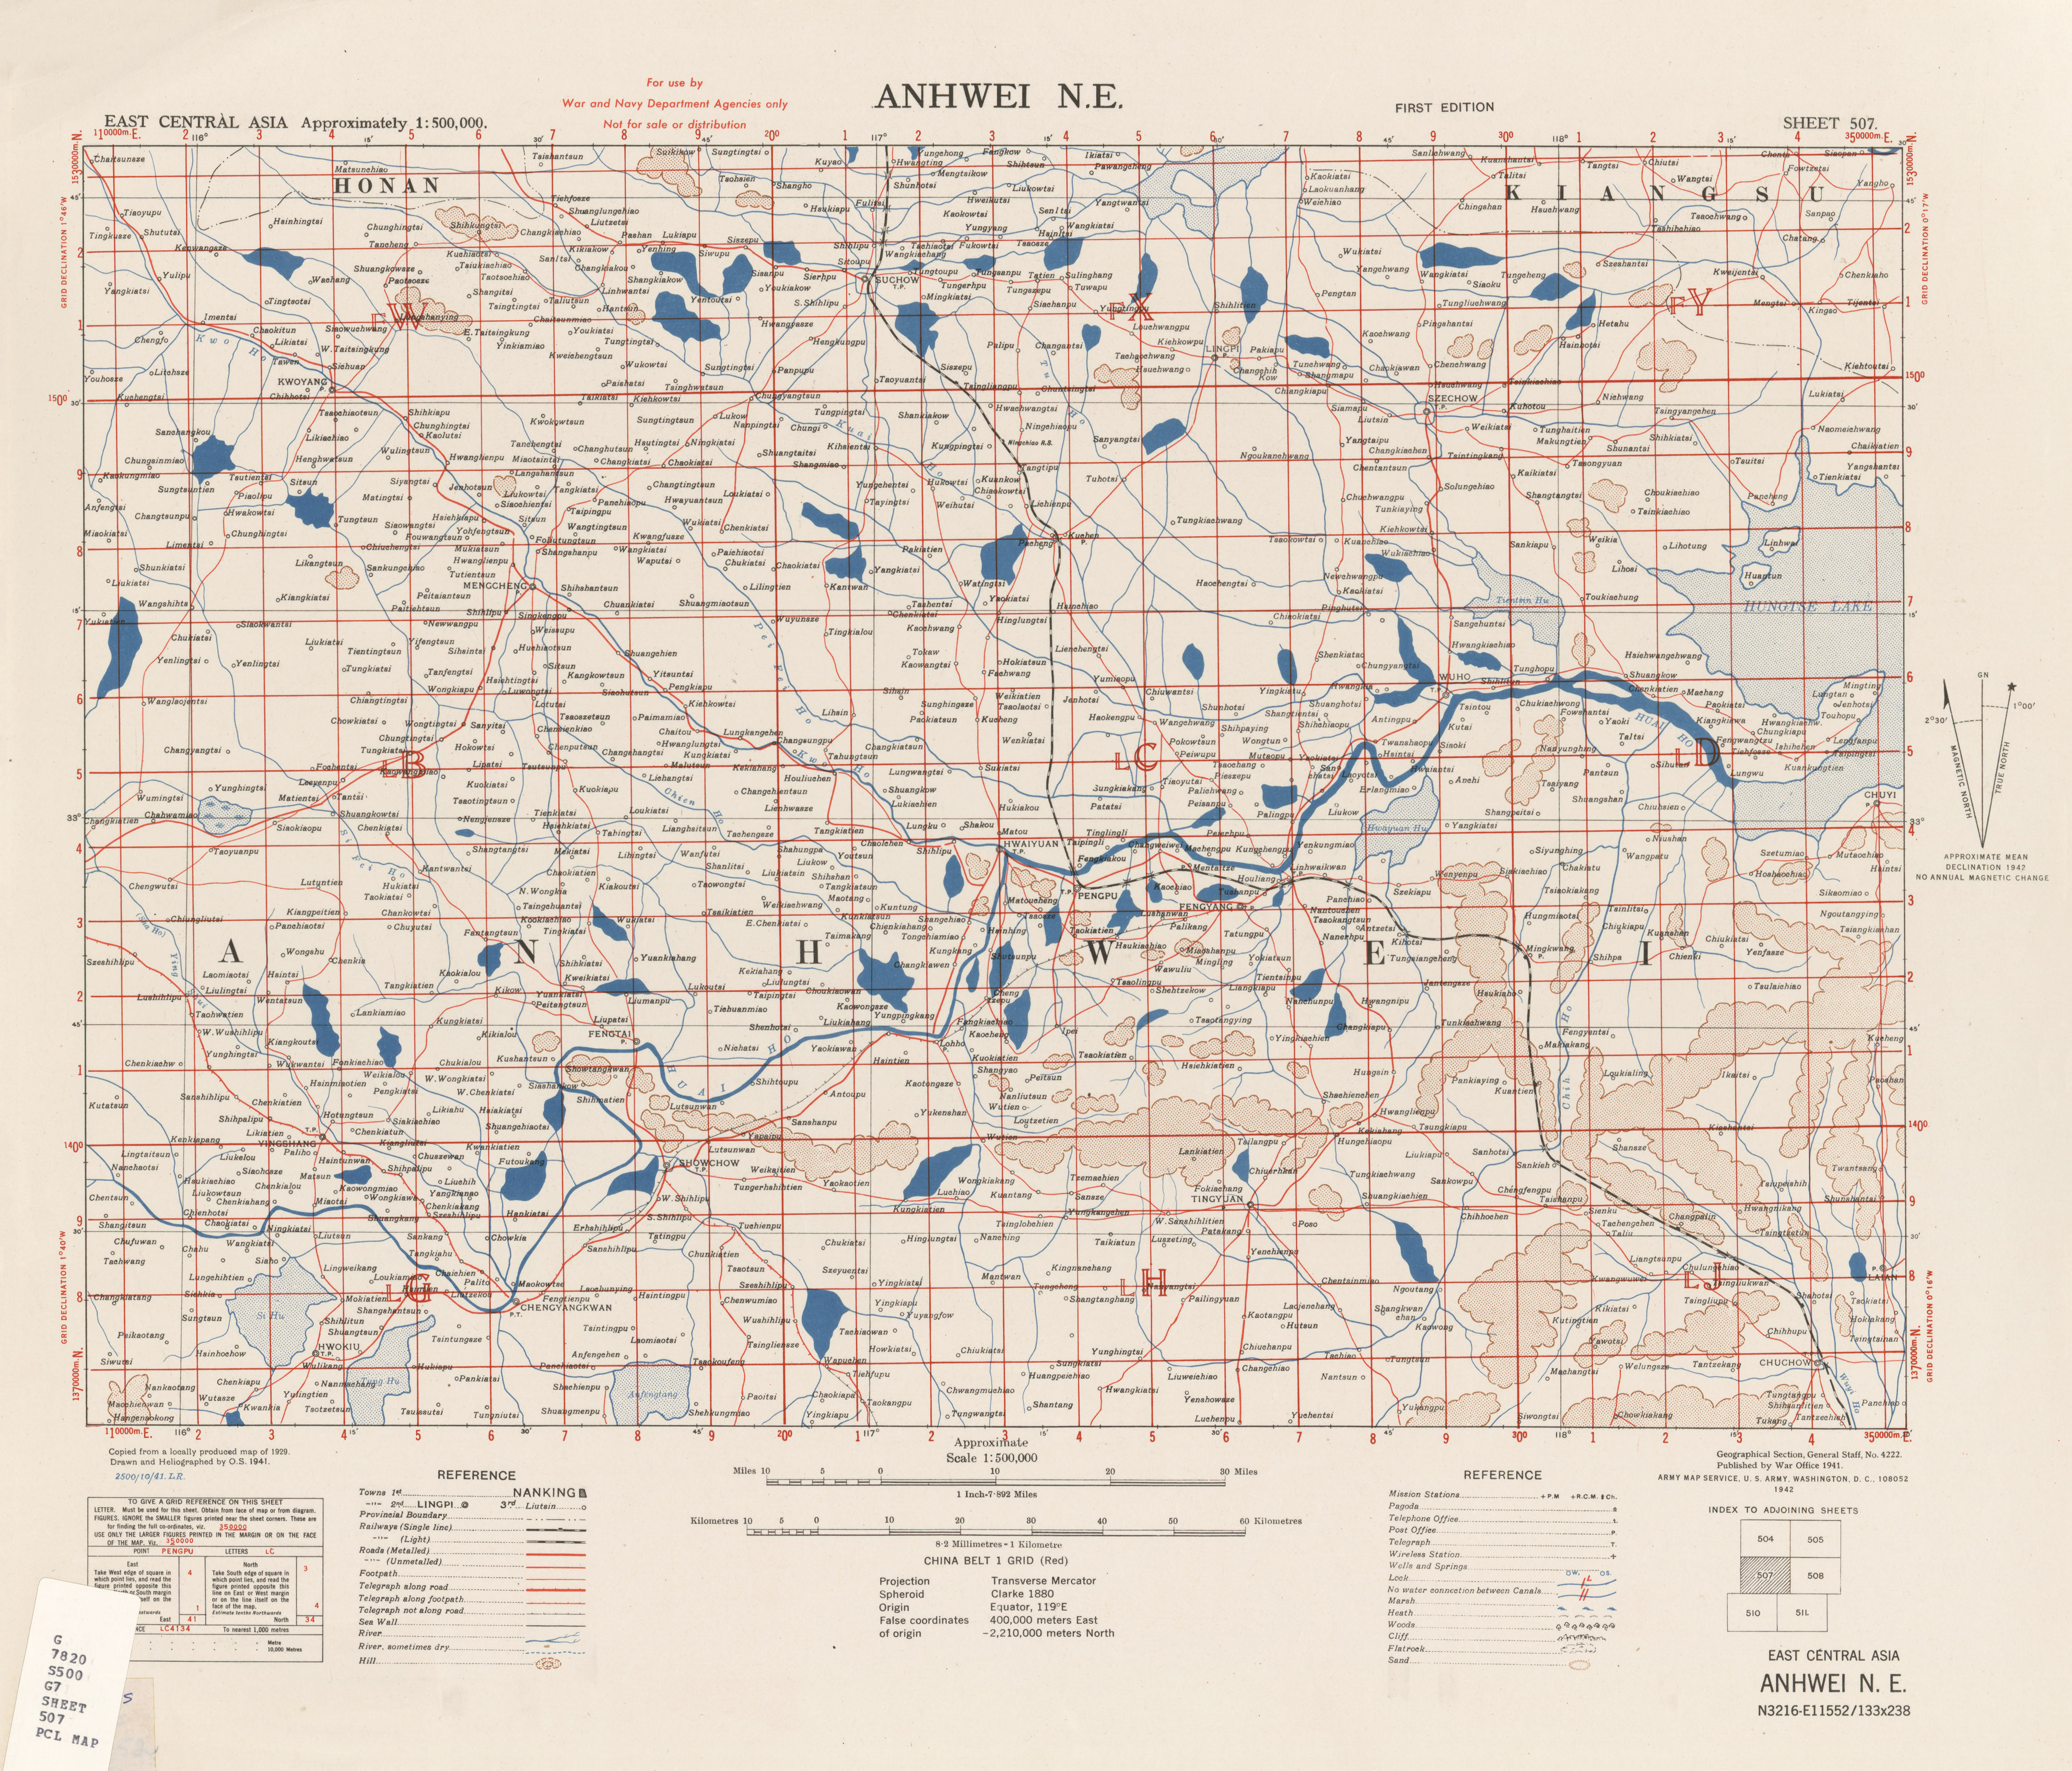 East Central Asia [China] Topographic Maps - Perry-Castañeda Map ...